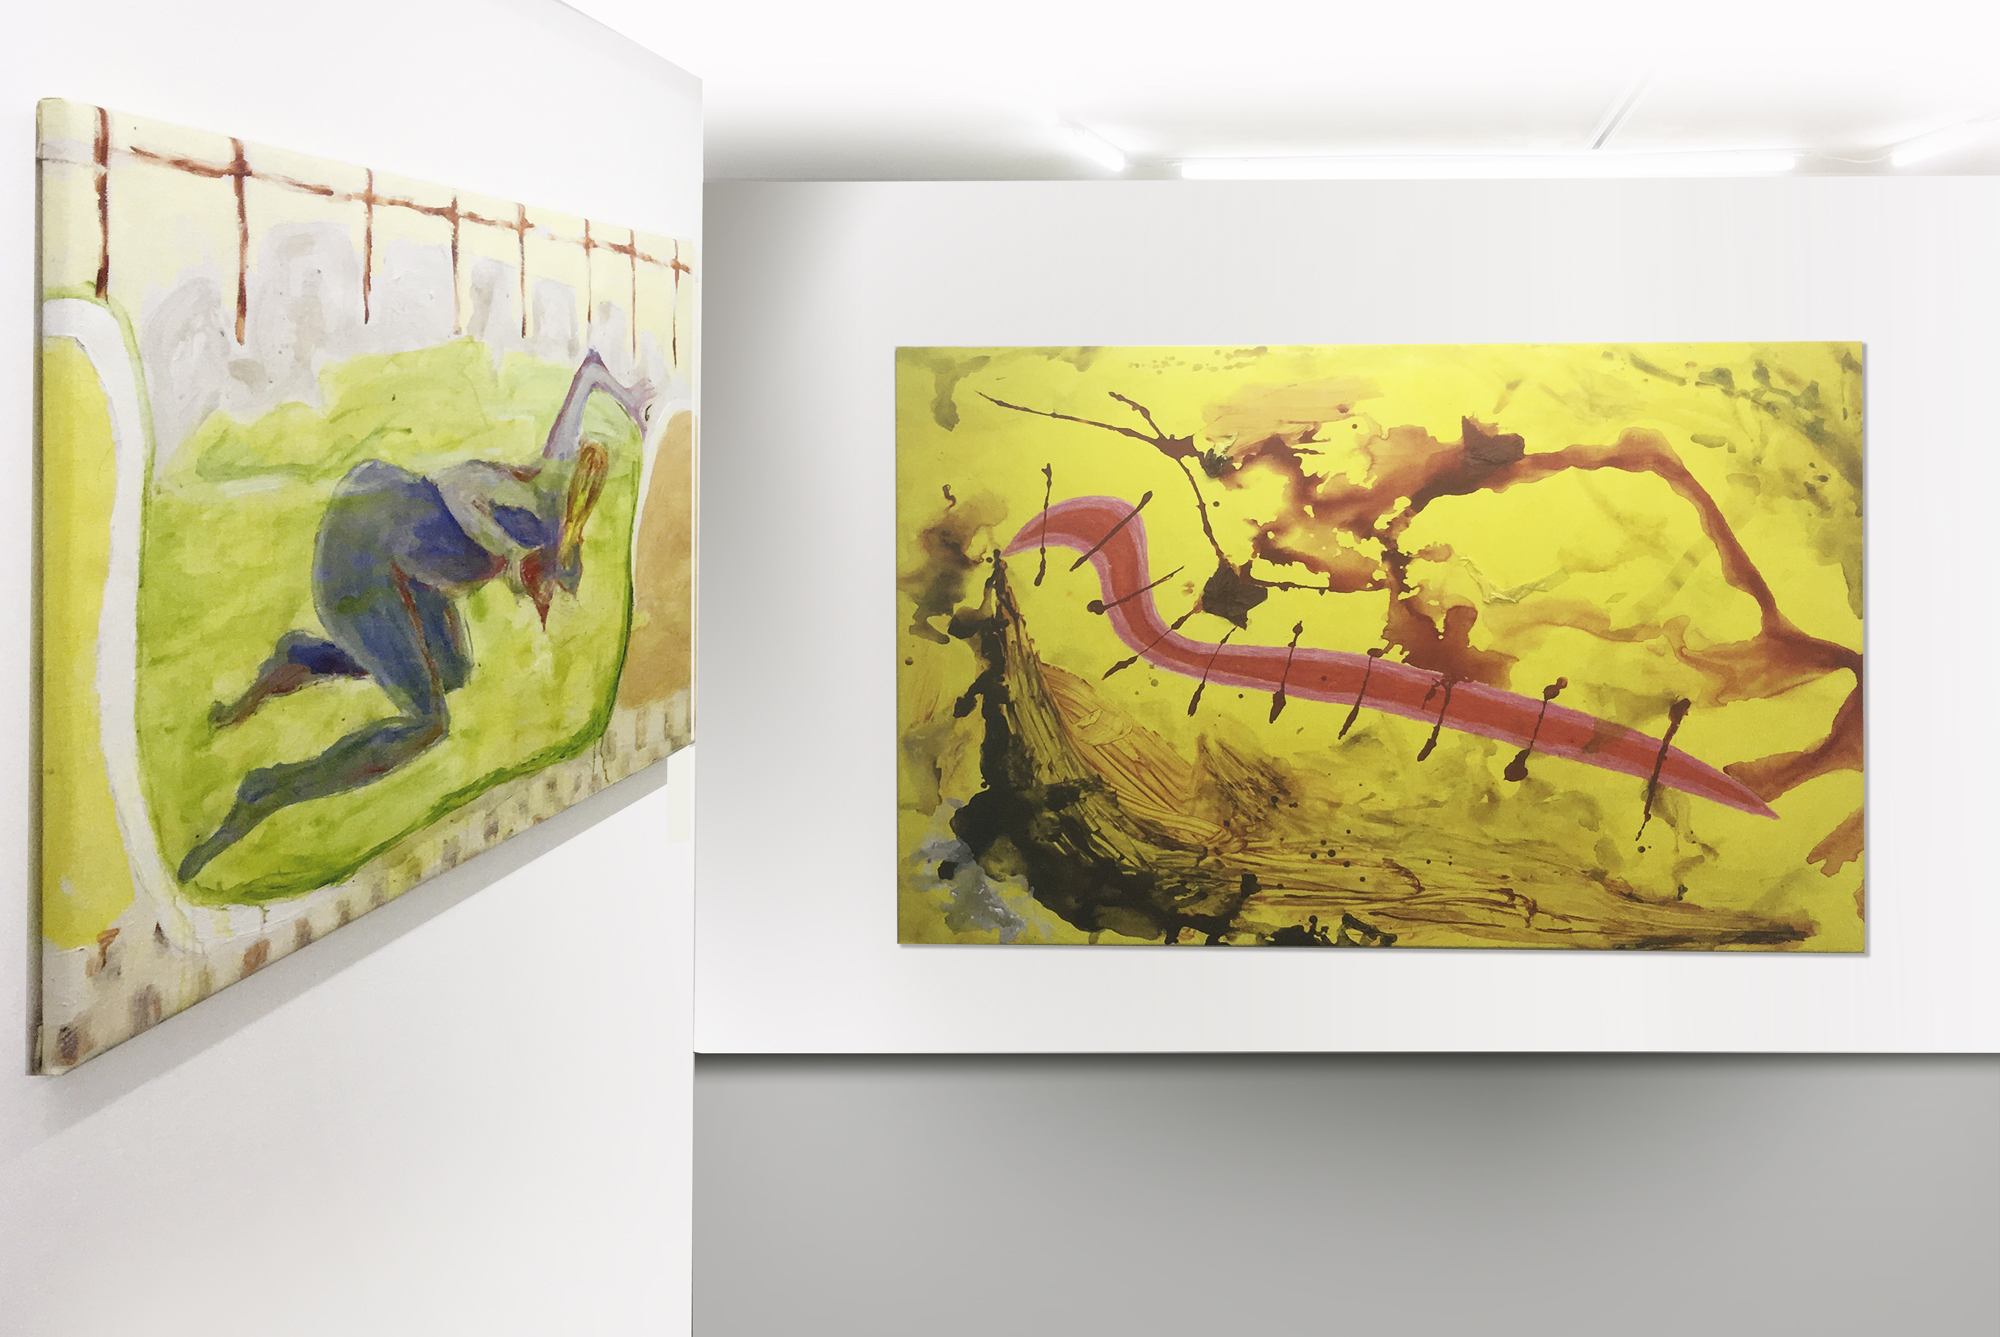 Exhibition view Lana Locke I never could drink like Francis Bacon (2019) at Lungley Gallery